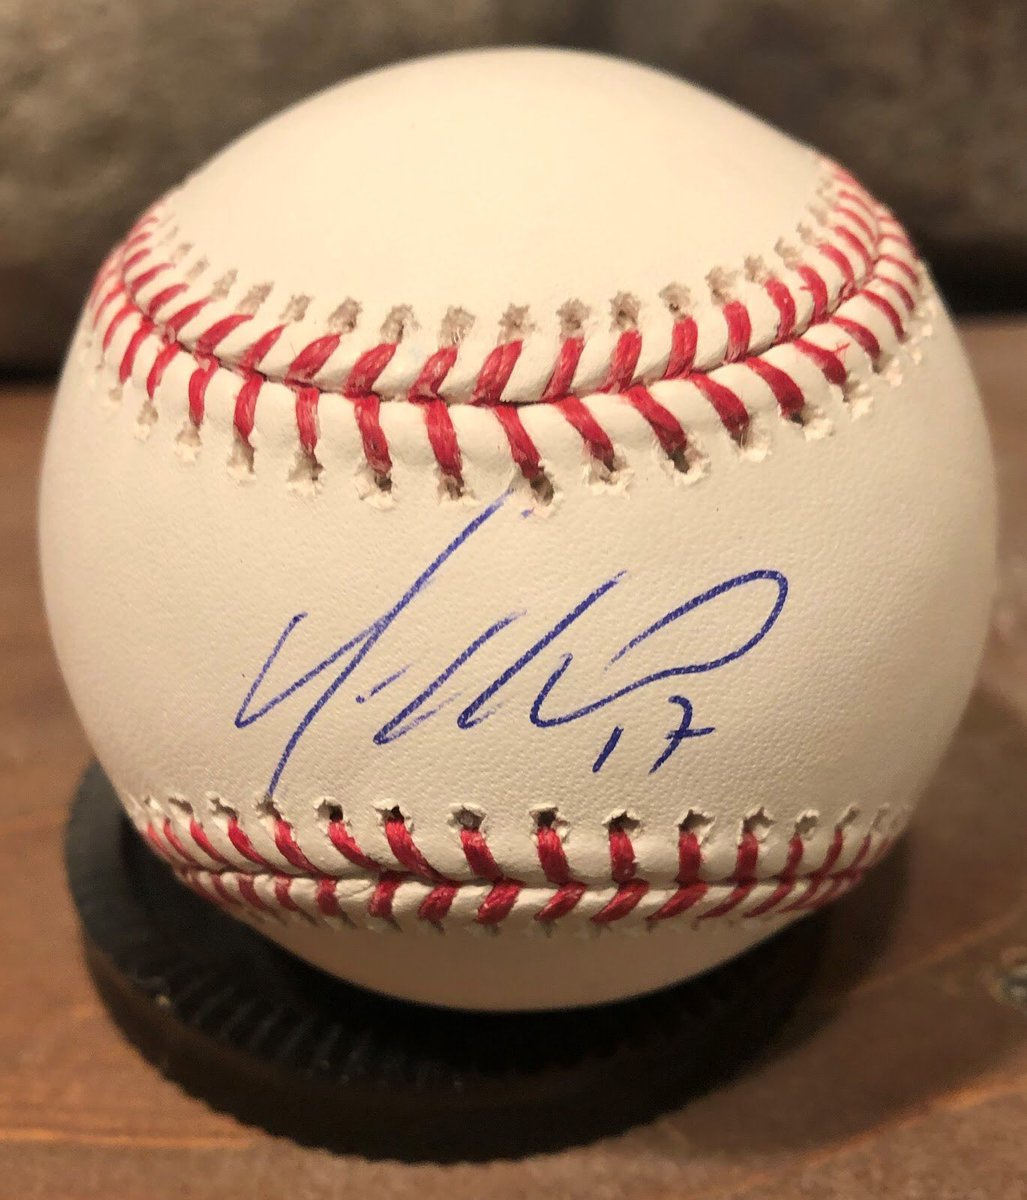 Happy 33rd birthday to @YonderalonsoU.  He signed this ball for me at #soxfest2019.  Hope you have a great day!  #whitesox #braves #reds #padres #athletics #mariners #rockies #mlb #romlb https://t.co/Yw1oKVlGs7